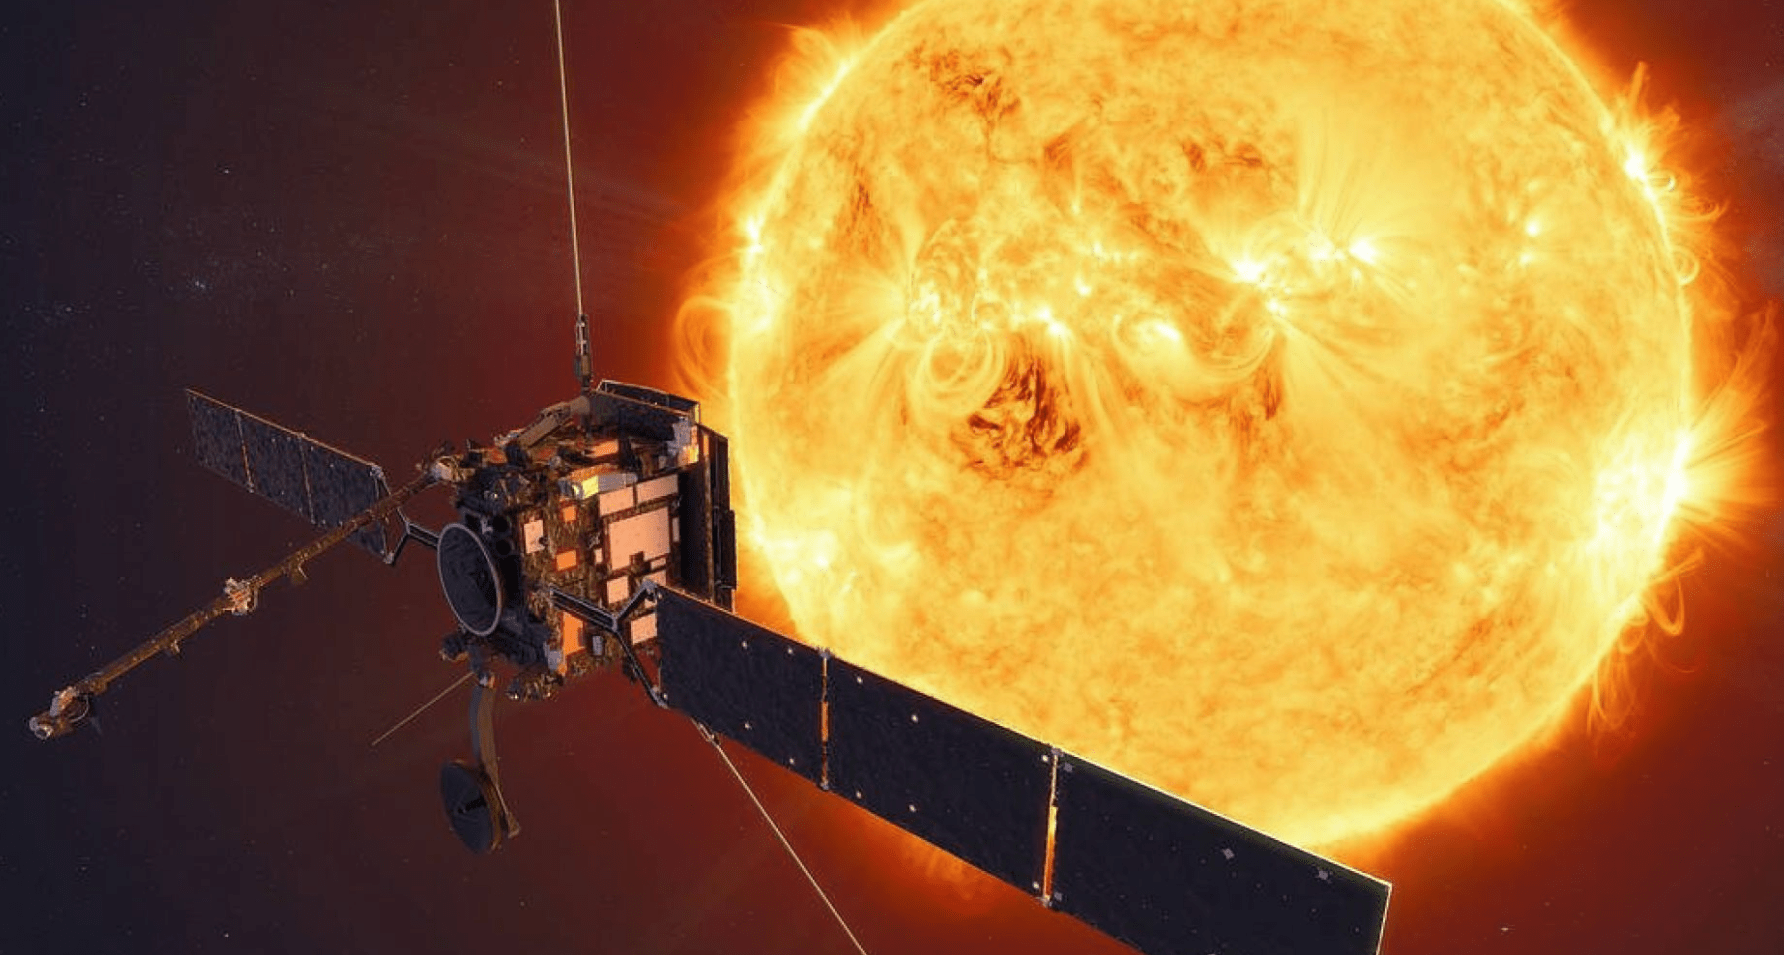 On Thursday NASA set to release closest ever mind-blowing images of the sun